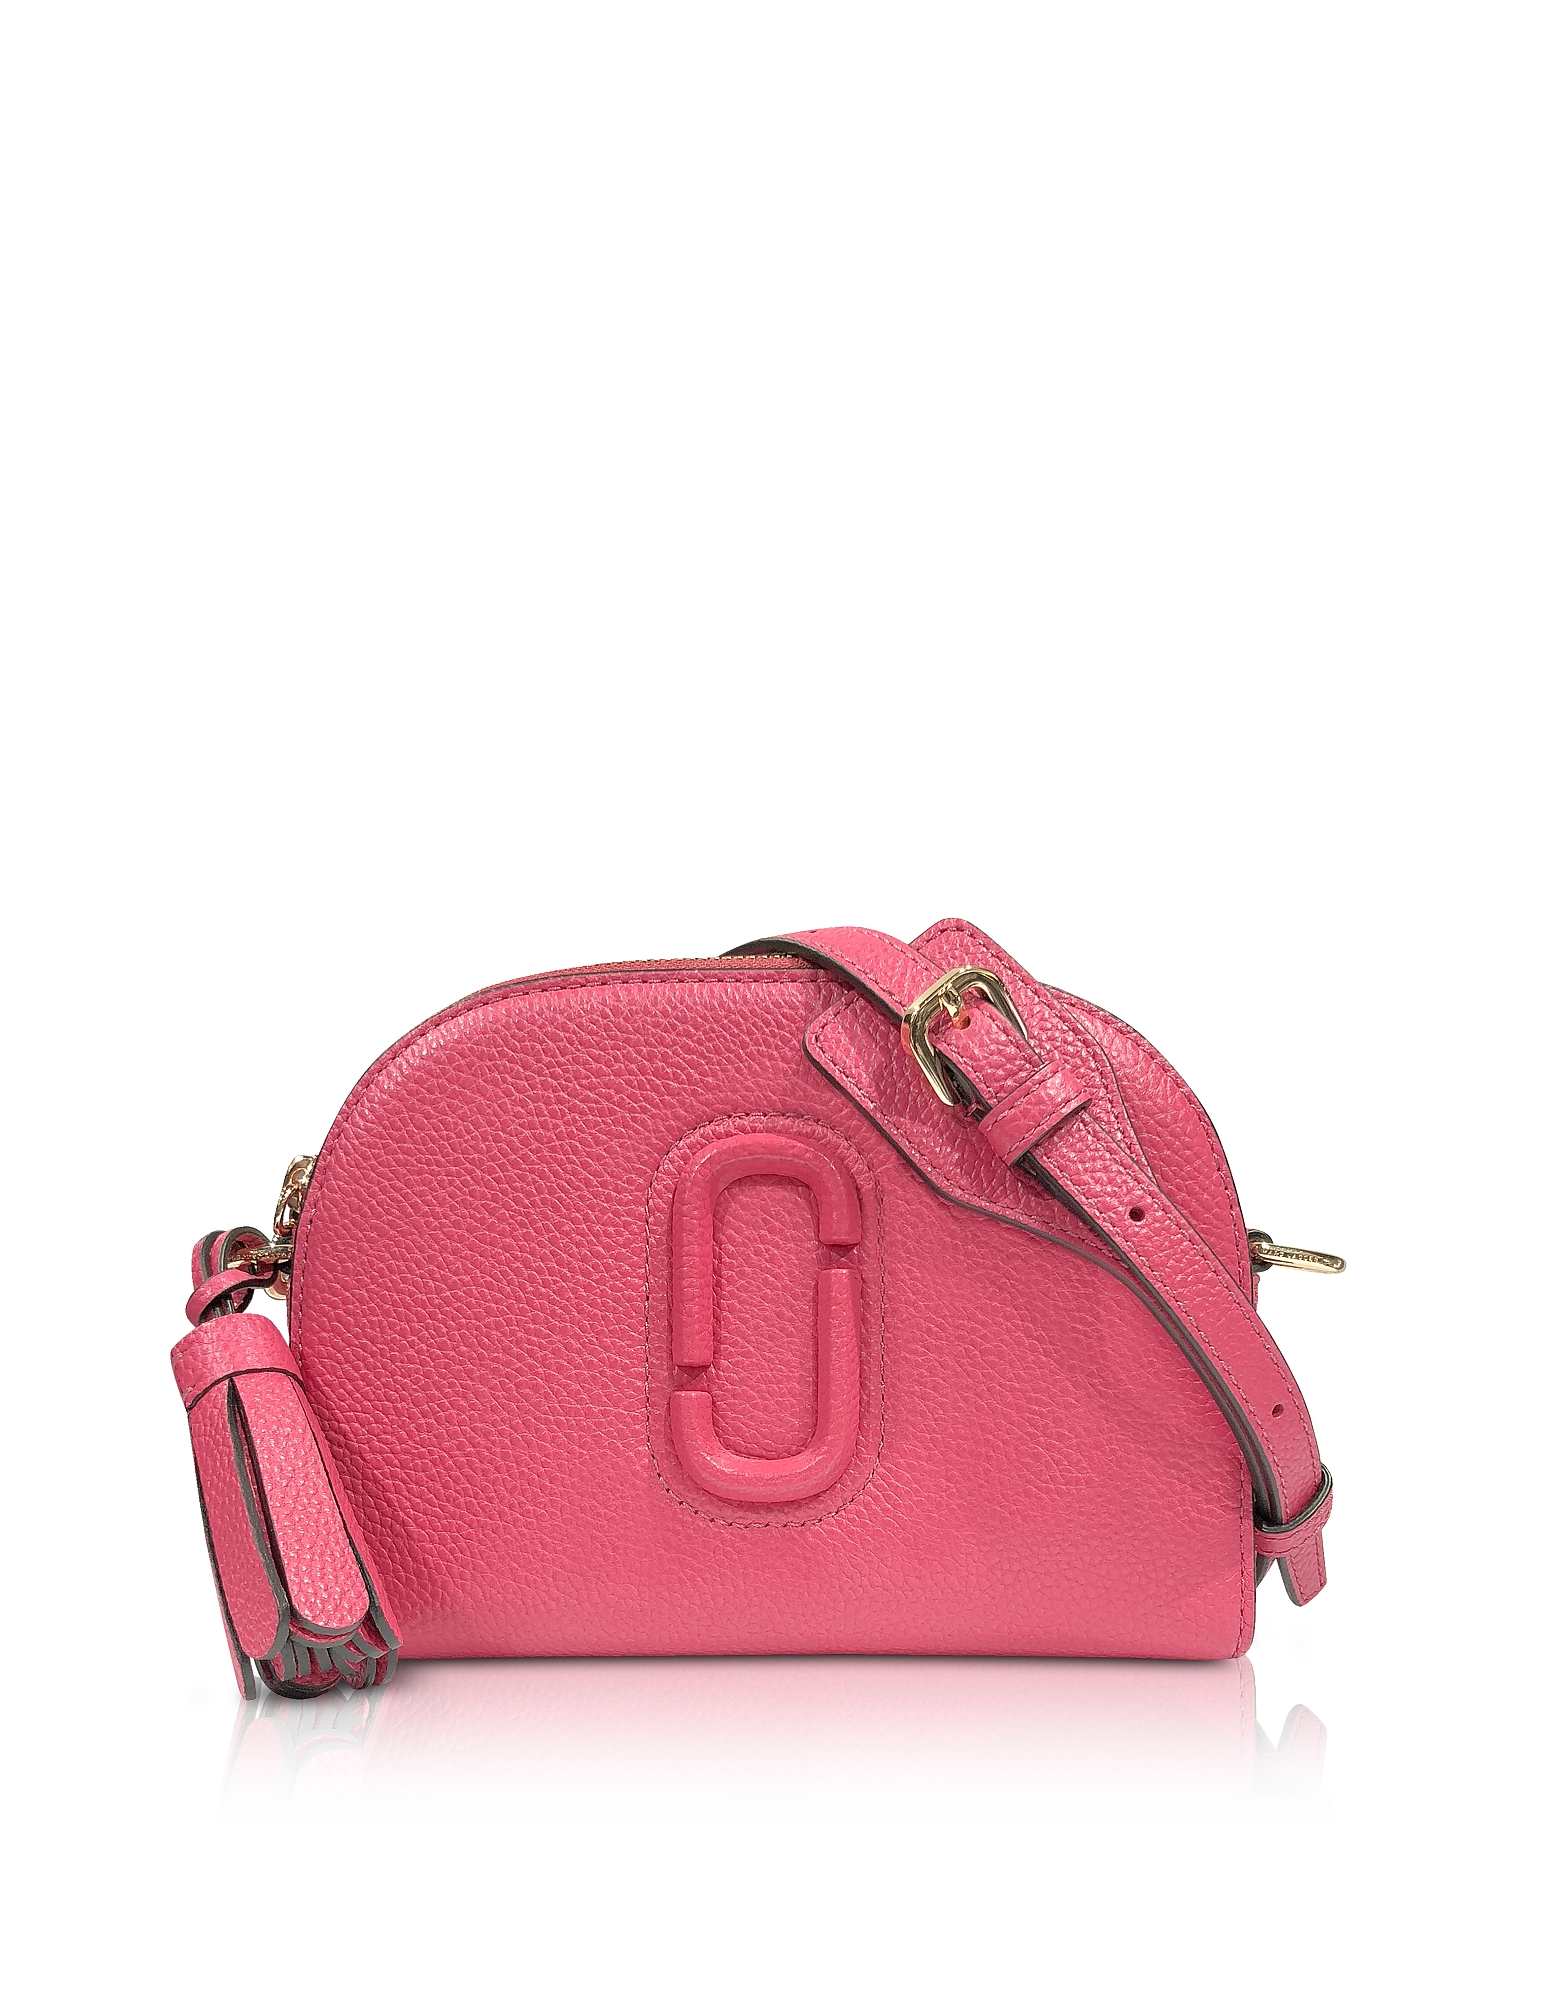 Marc Jacobs Handbags, Shutter Peony Leather Small Camera Bag